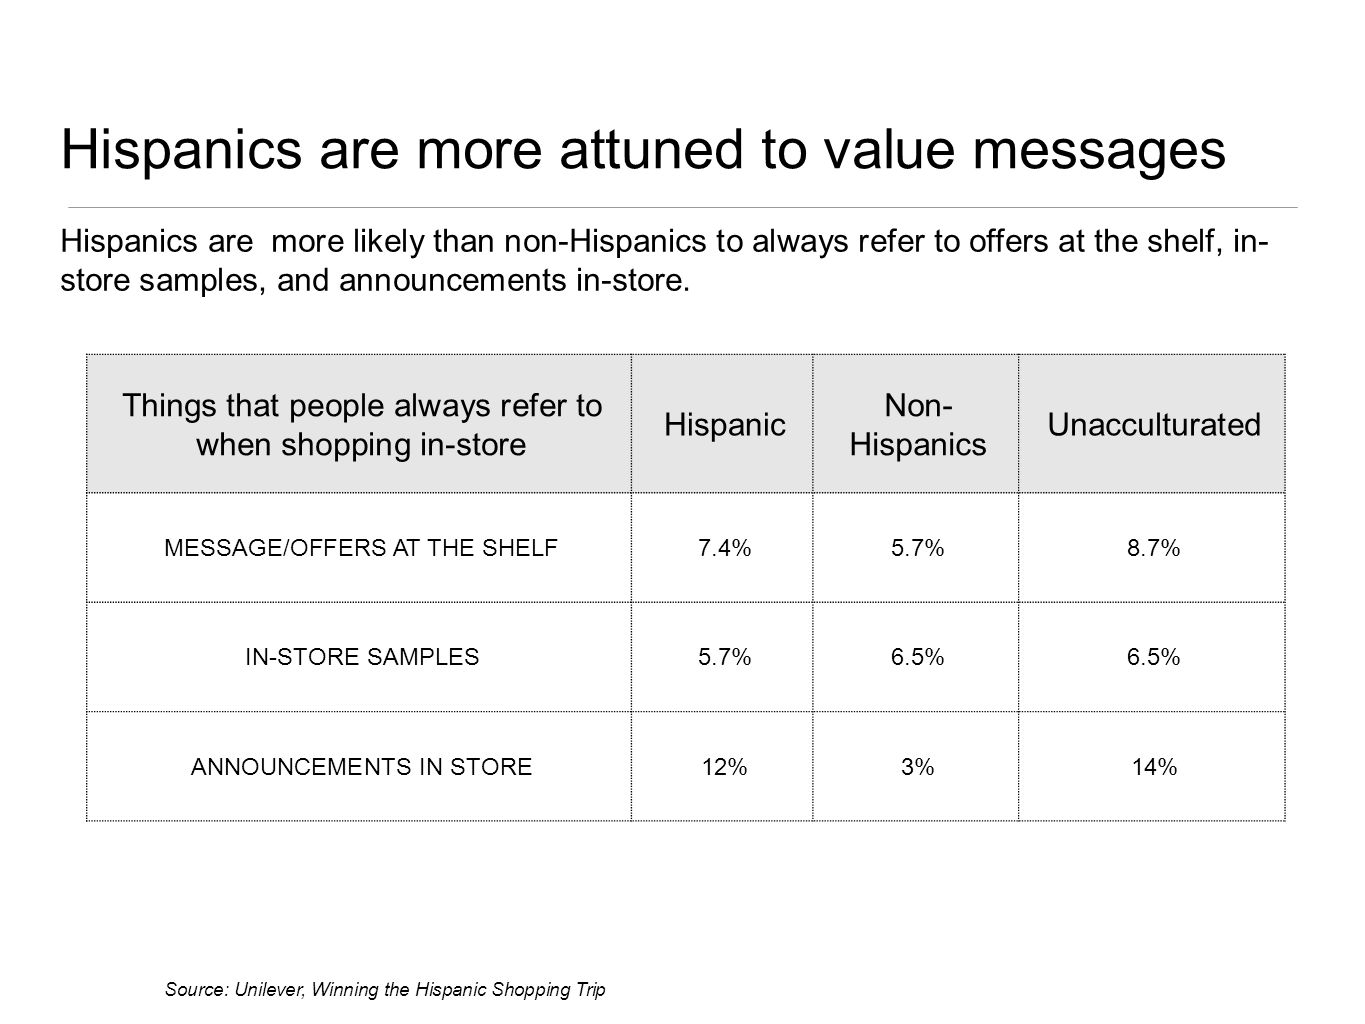 Things that people always refer to when shopping in-store Hispanic Non- Hispanics Unacculturated MESSAGE/OFFERS AT THE SHELF7.4%5.7%8.7% IN-STORE SAMPLES5.7%6.5% ANNOUNCEMENTS IN STORE12%3%14% Source: Unilever, Winning the Hispanic Shopping Trip Hispanics are more likely than non-Hispanics to always refer to offers at the shelf, in- store samples, and announcements in-store.